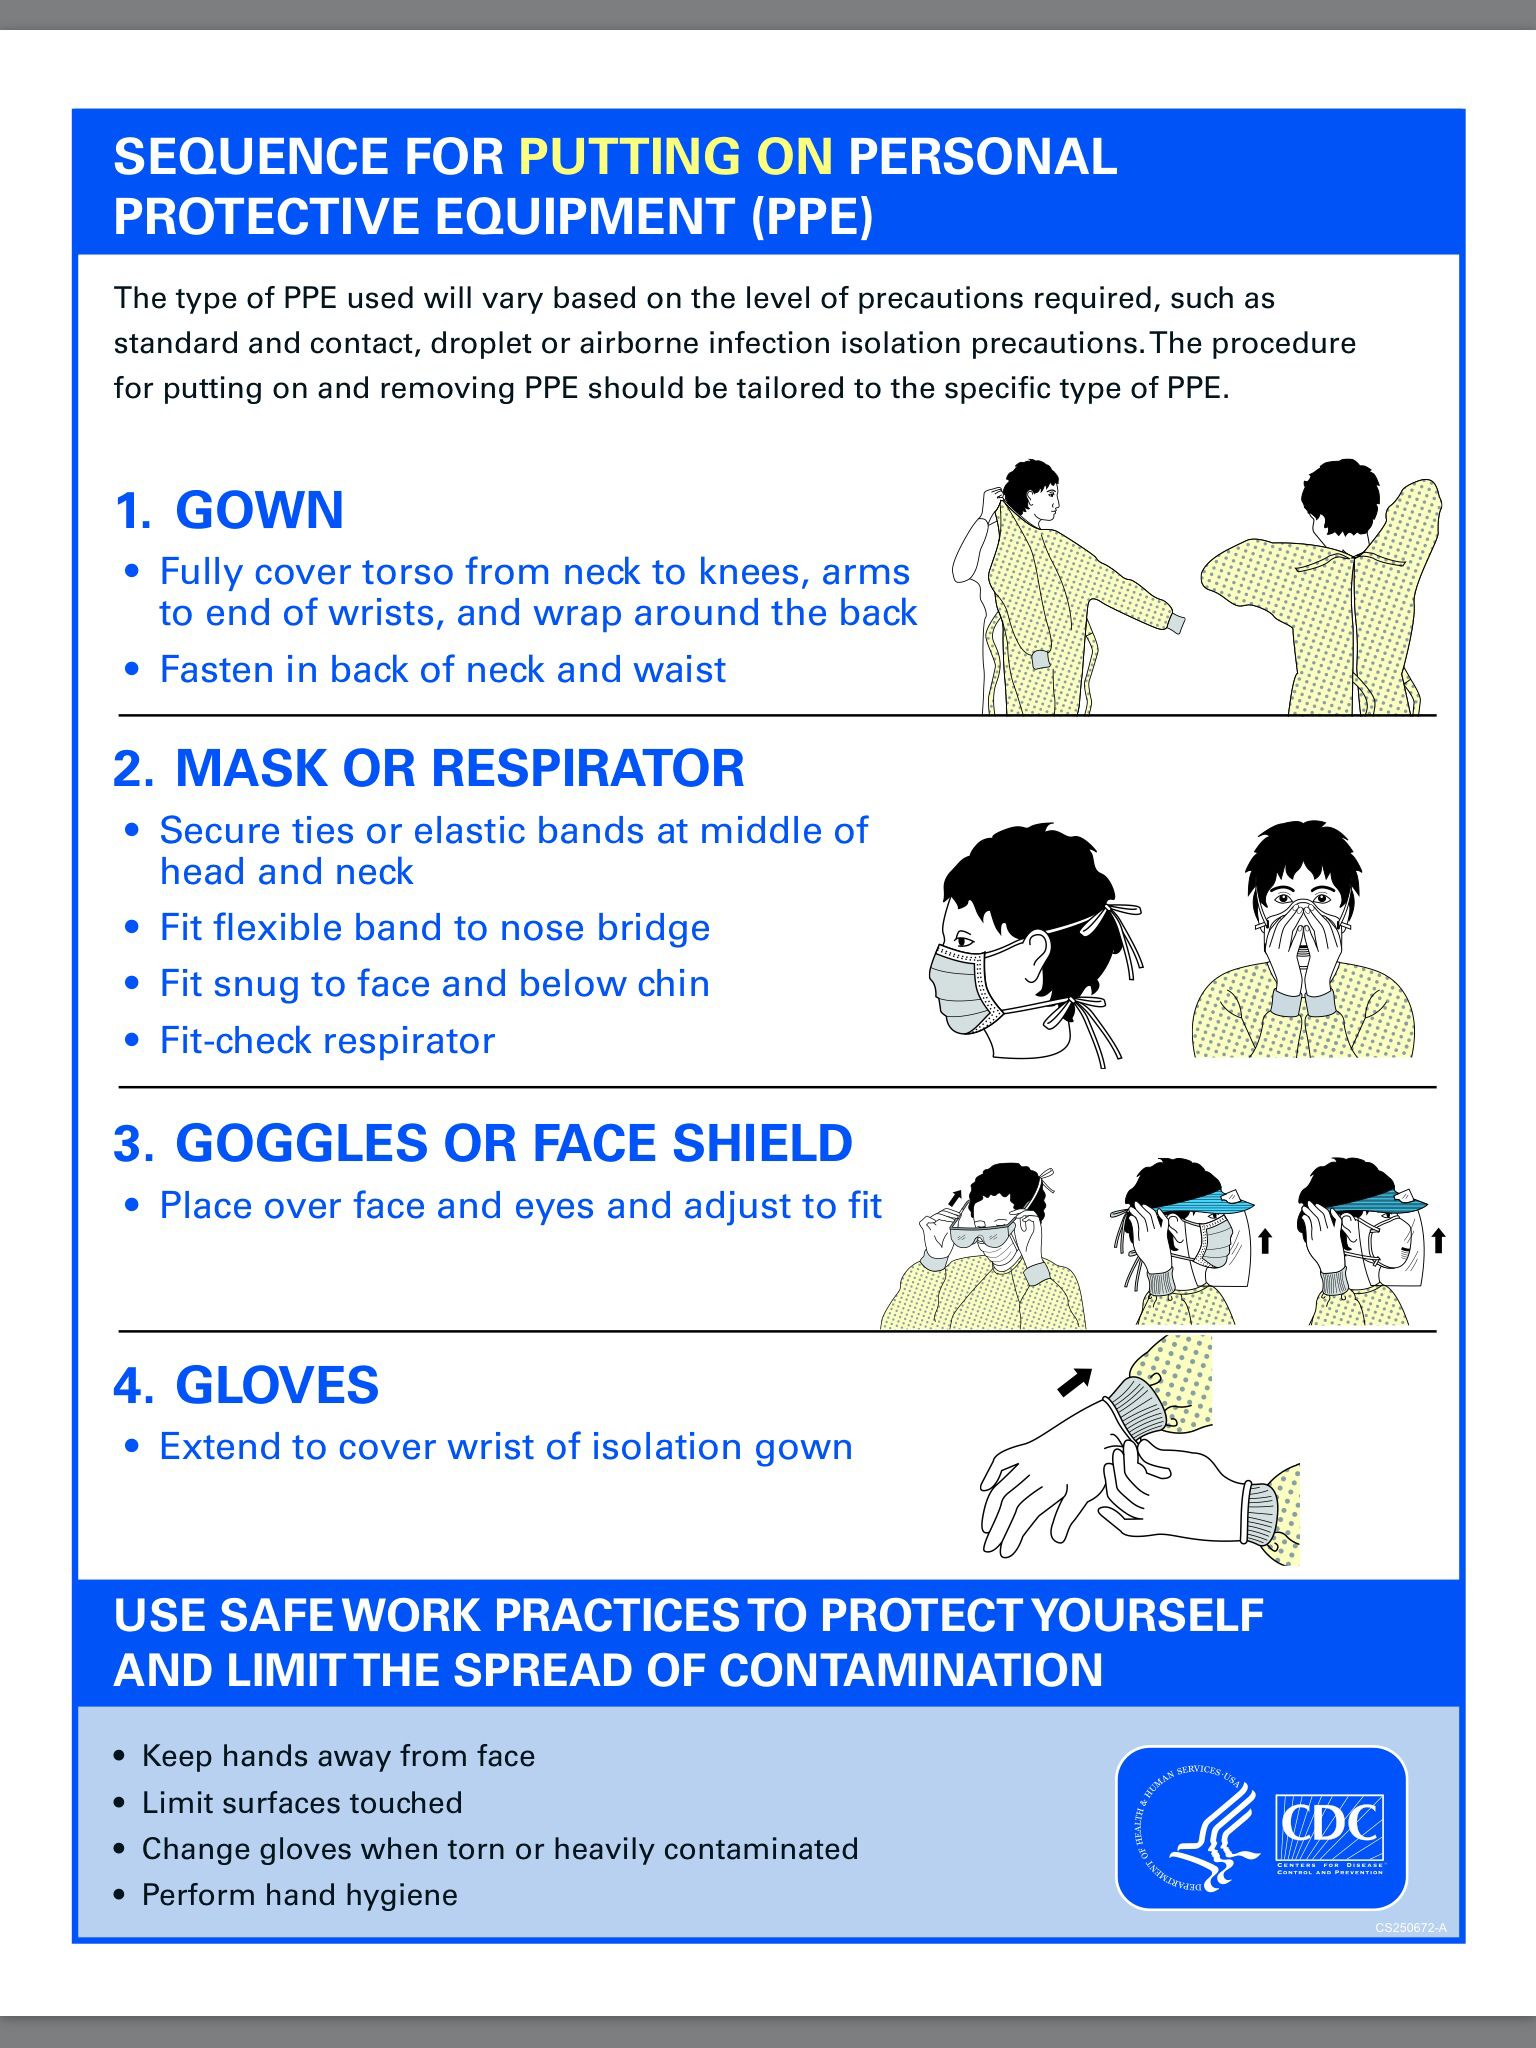 Donning ppe http//www.cdc.gov/vhf/ebola/pdf/ppeposter